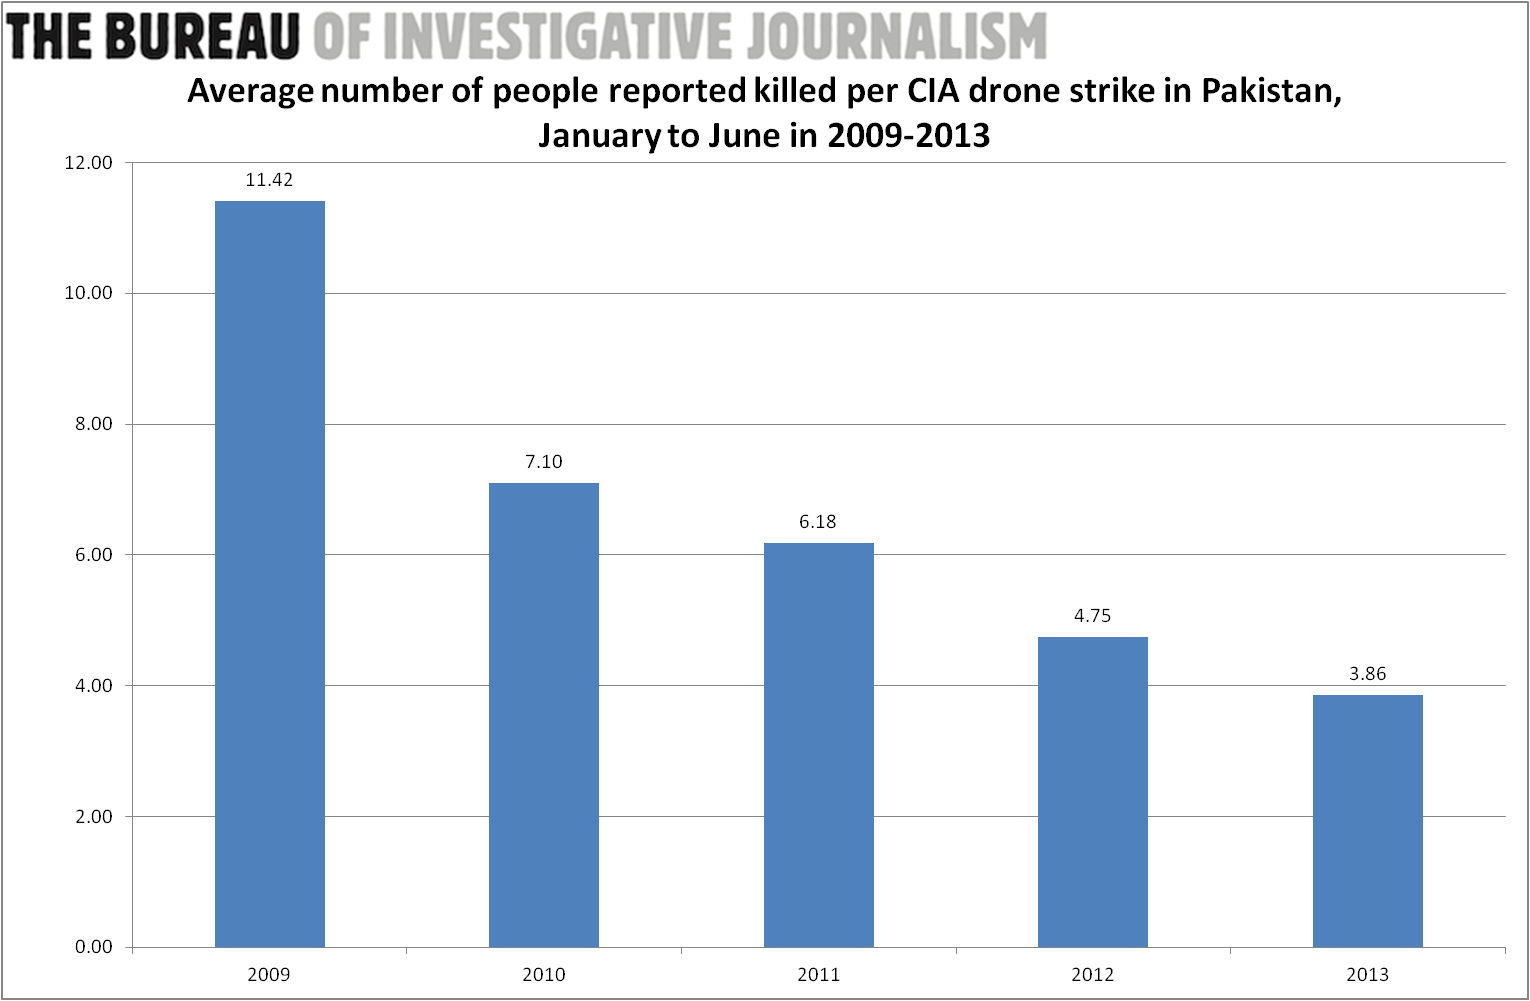 People killed per strike in Pakistan